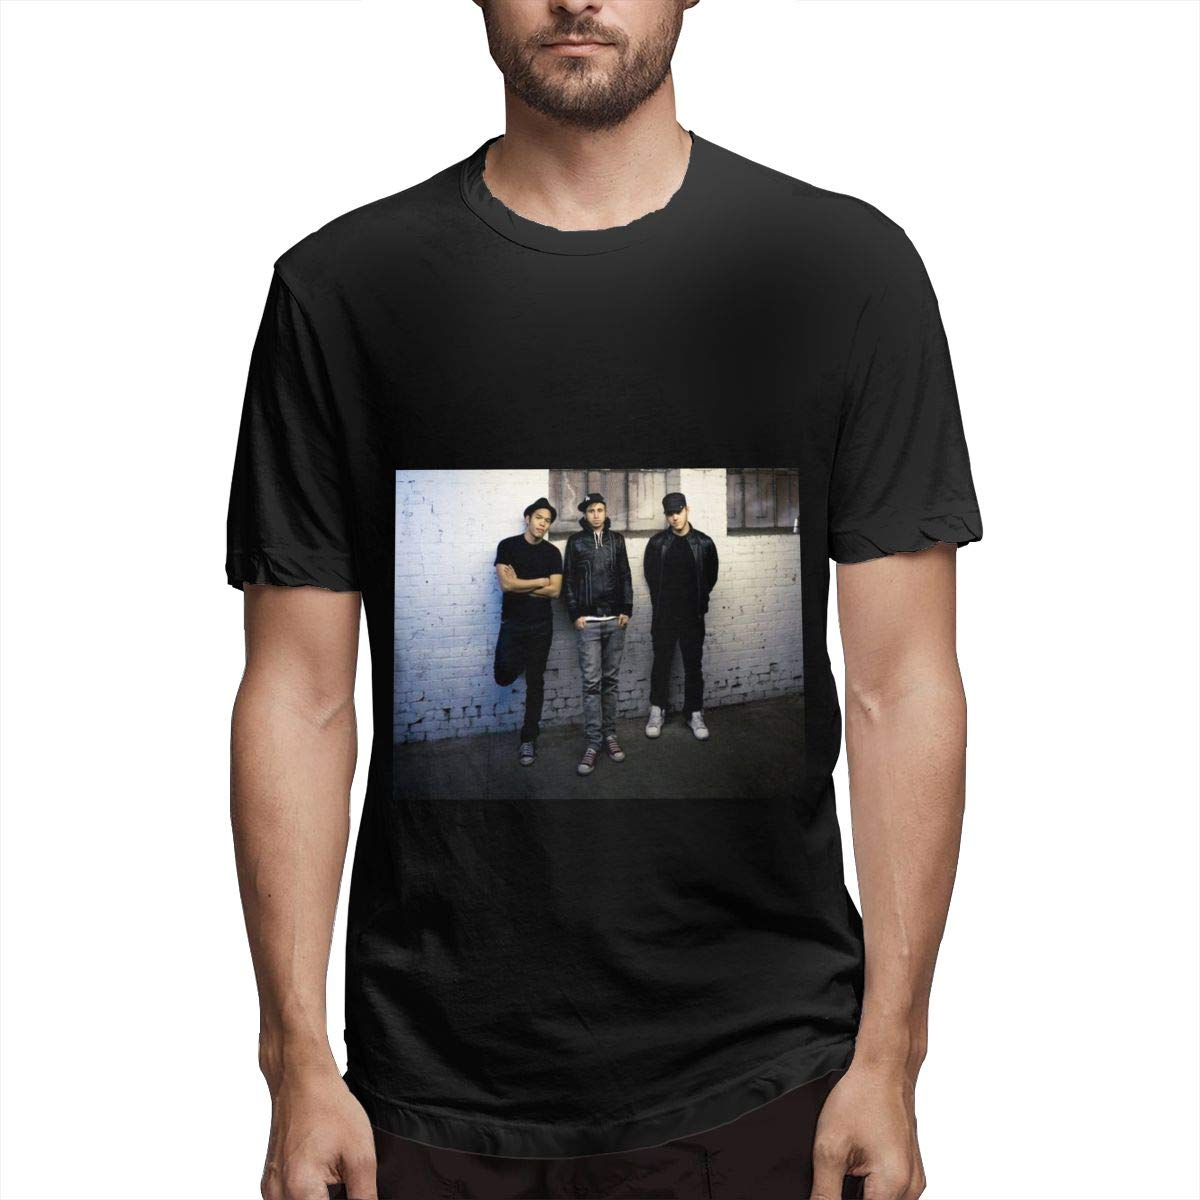 Lihehen Mans The Glitch Mob Simple Casual Round Neck Ts Shirts